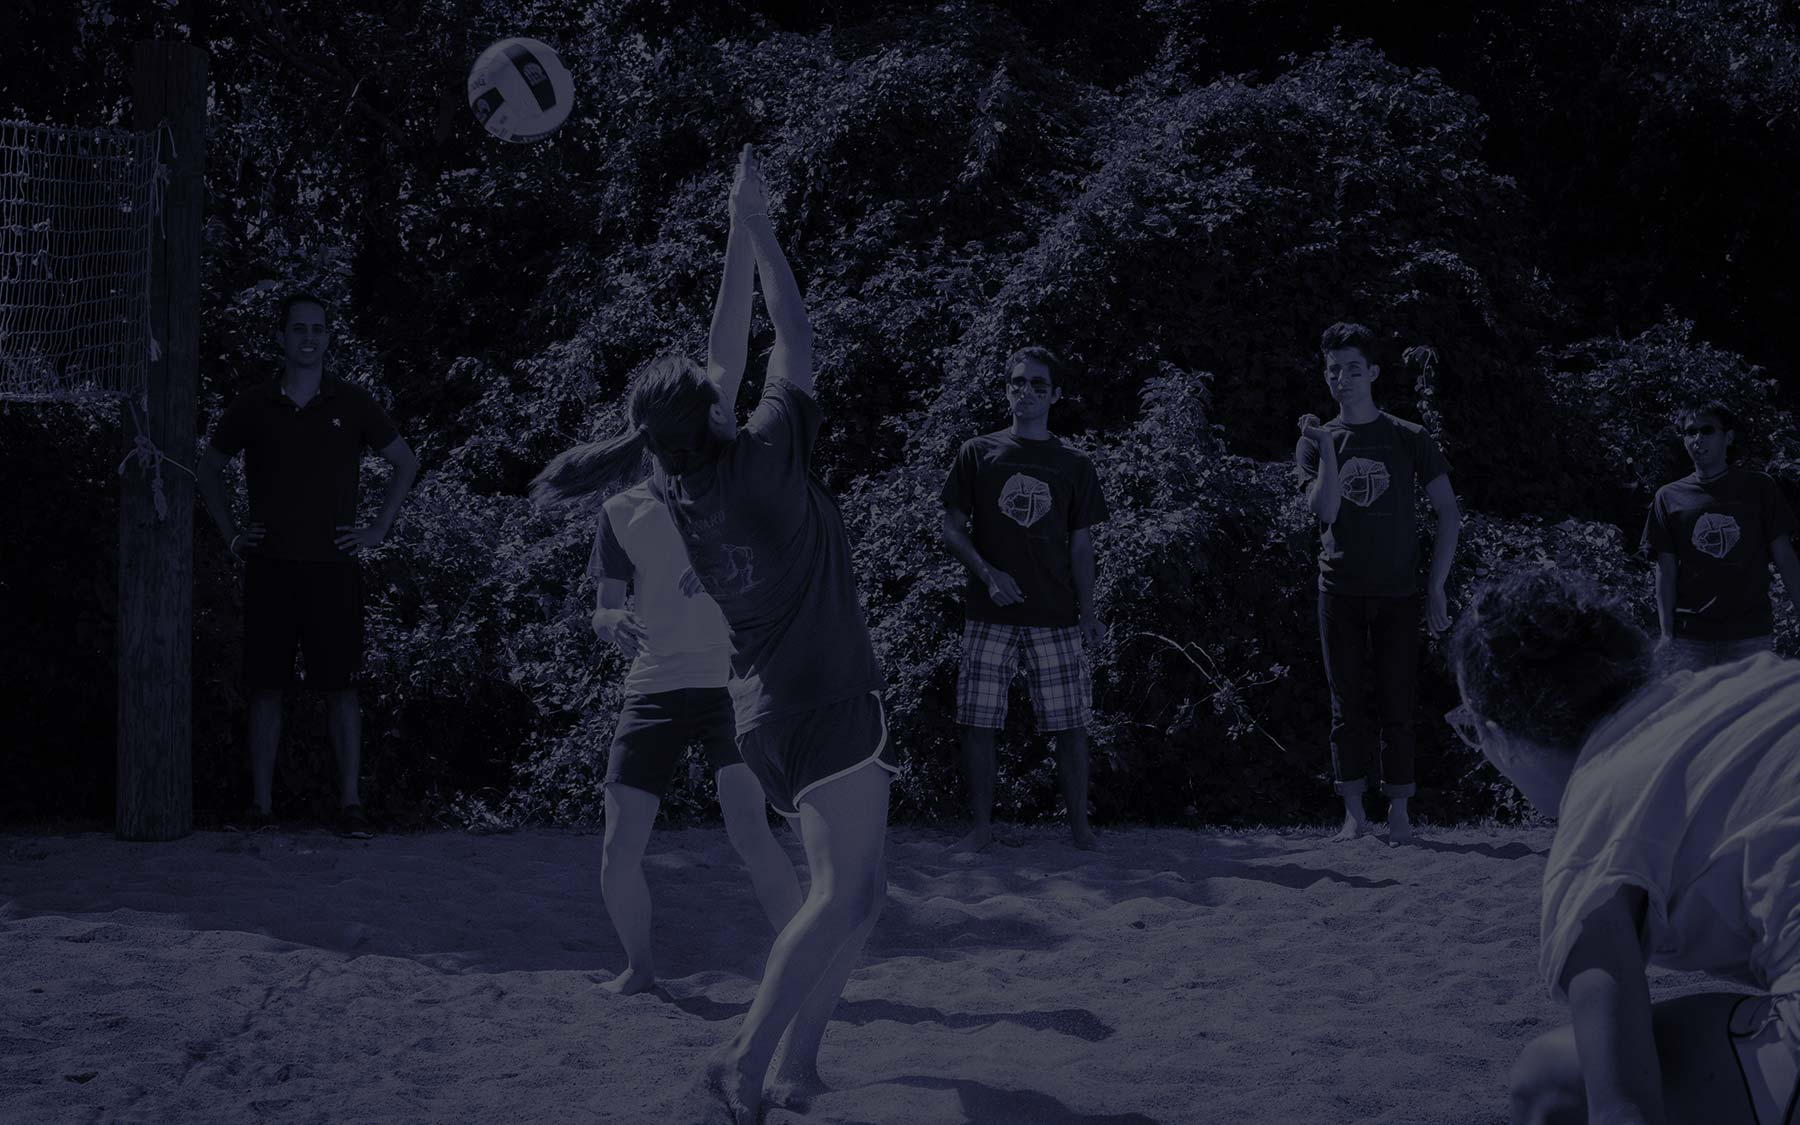 MCO playing volleyball